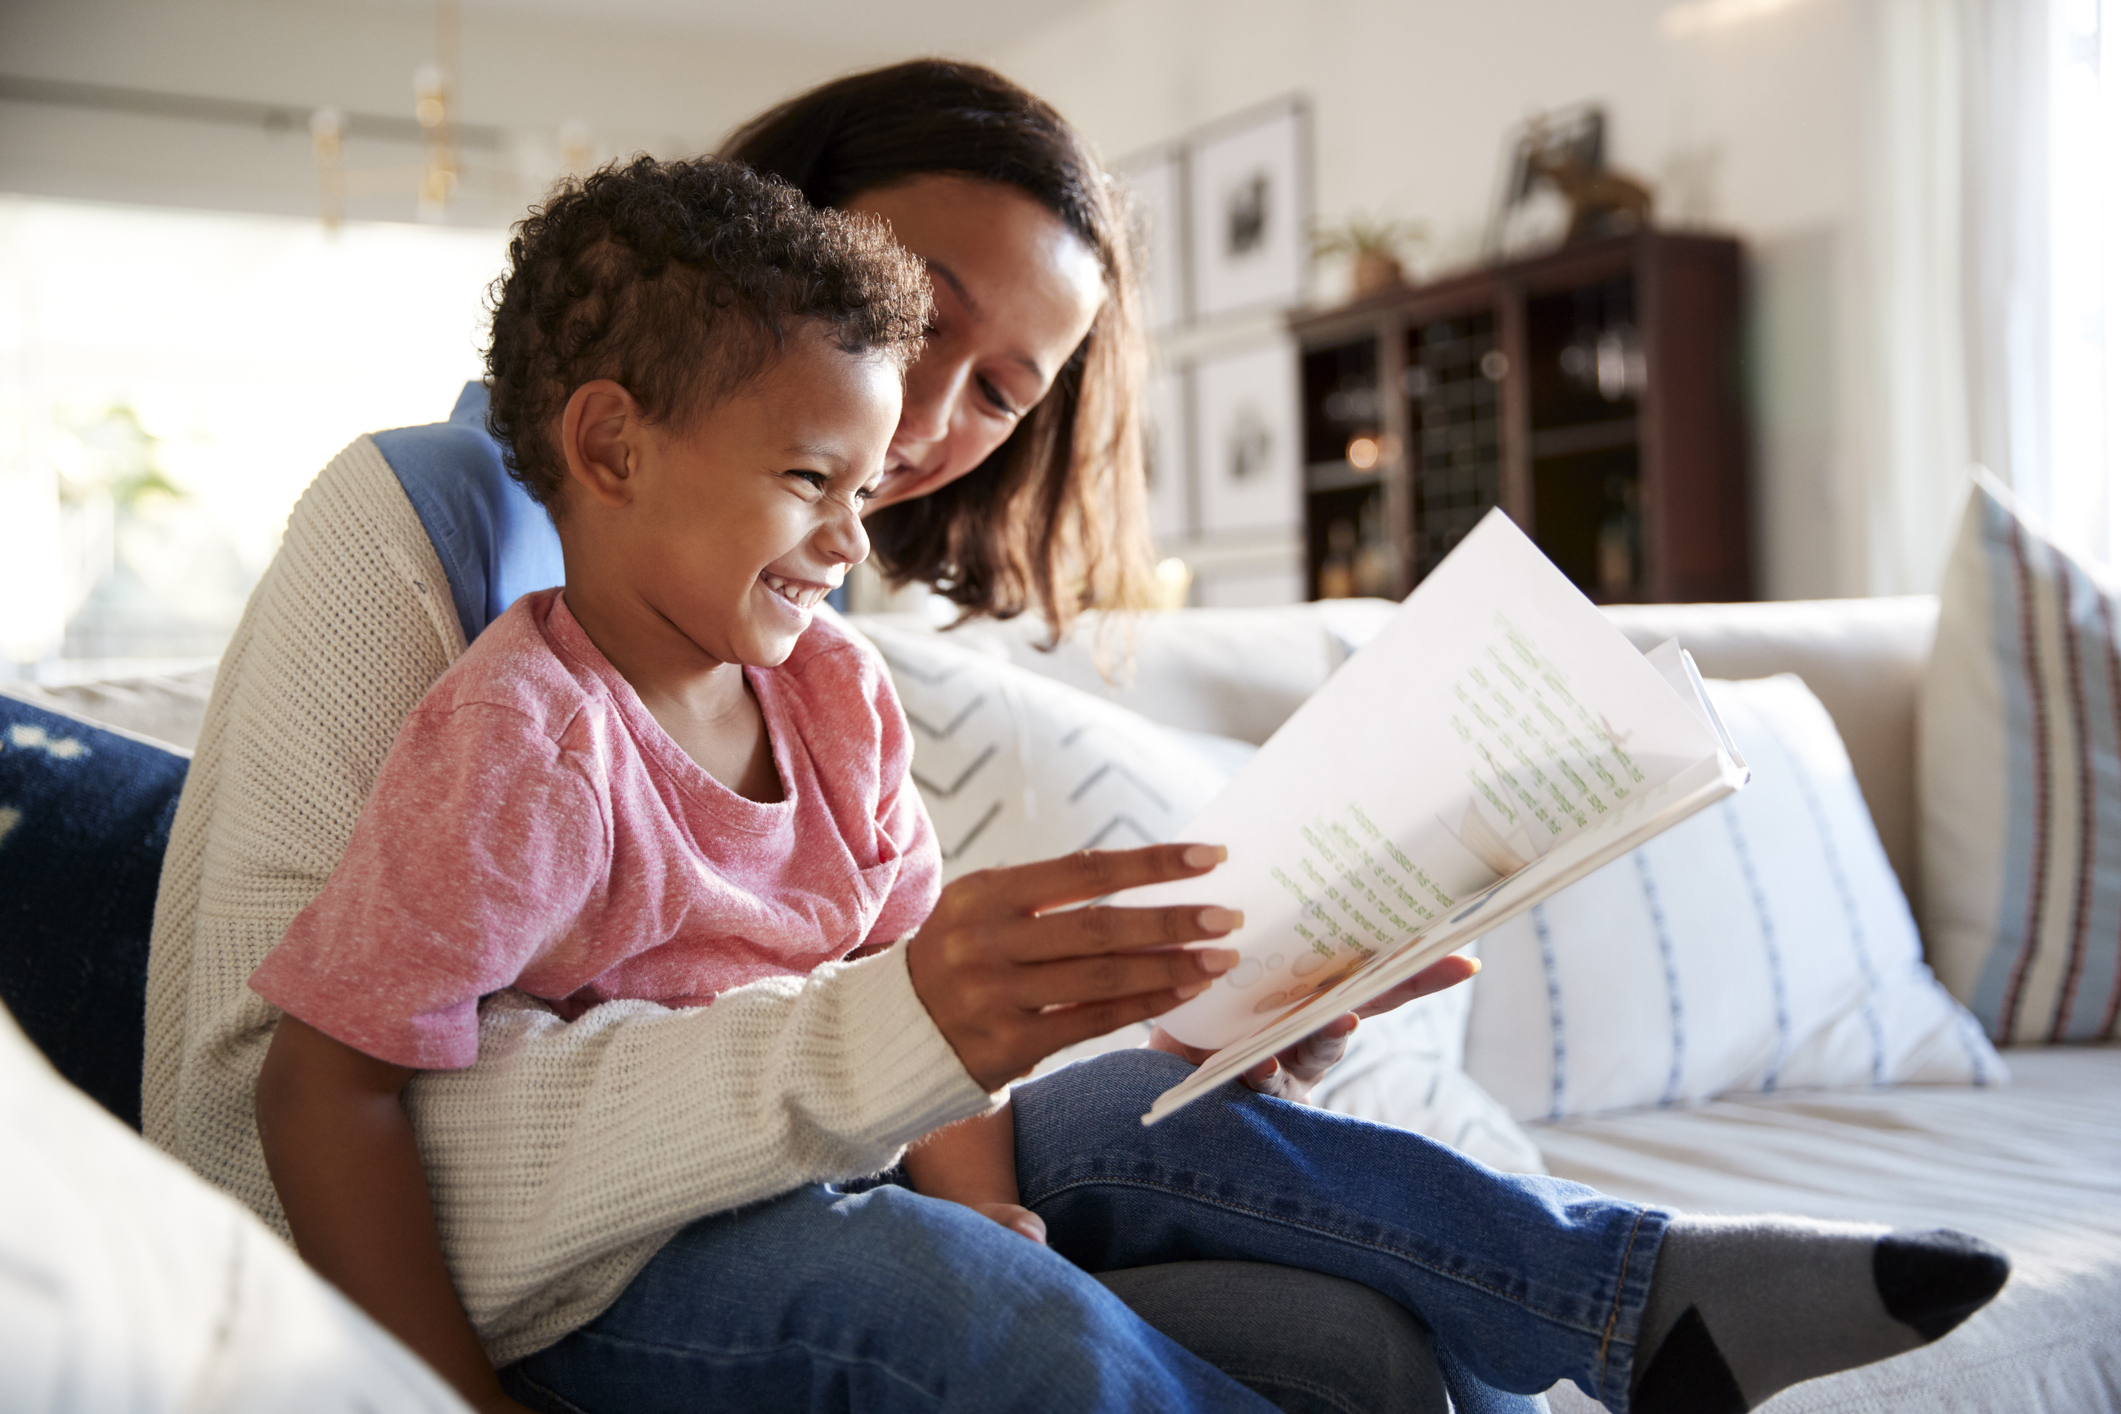 Mother sitting and reading with toddler son.